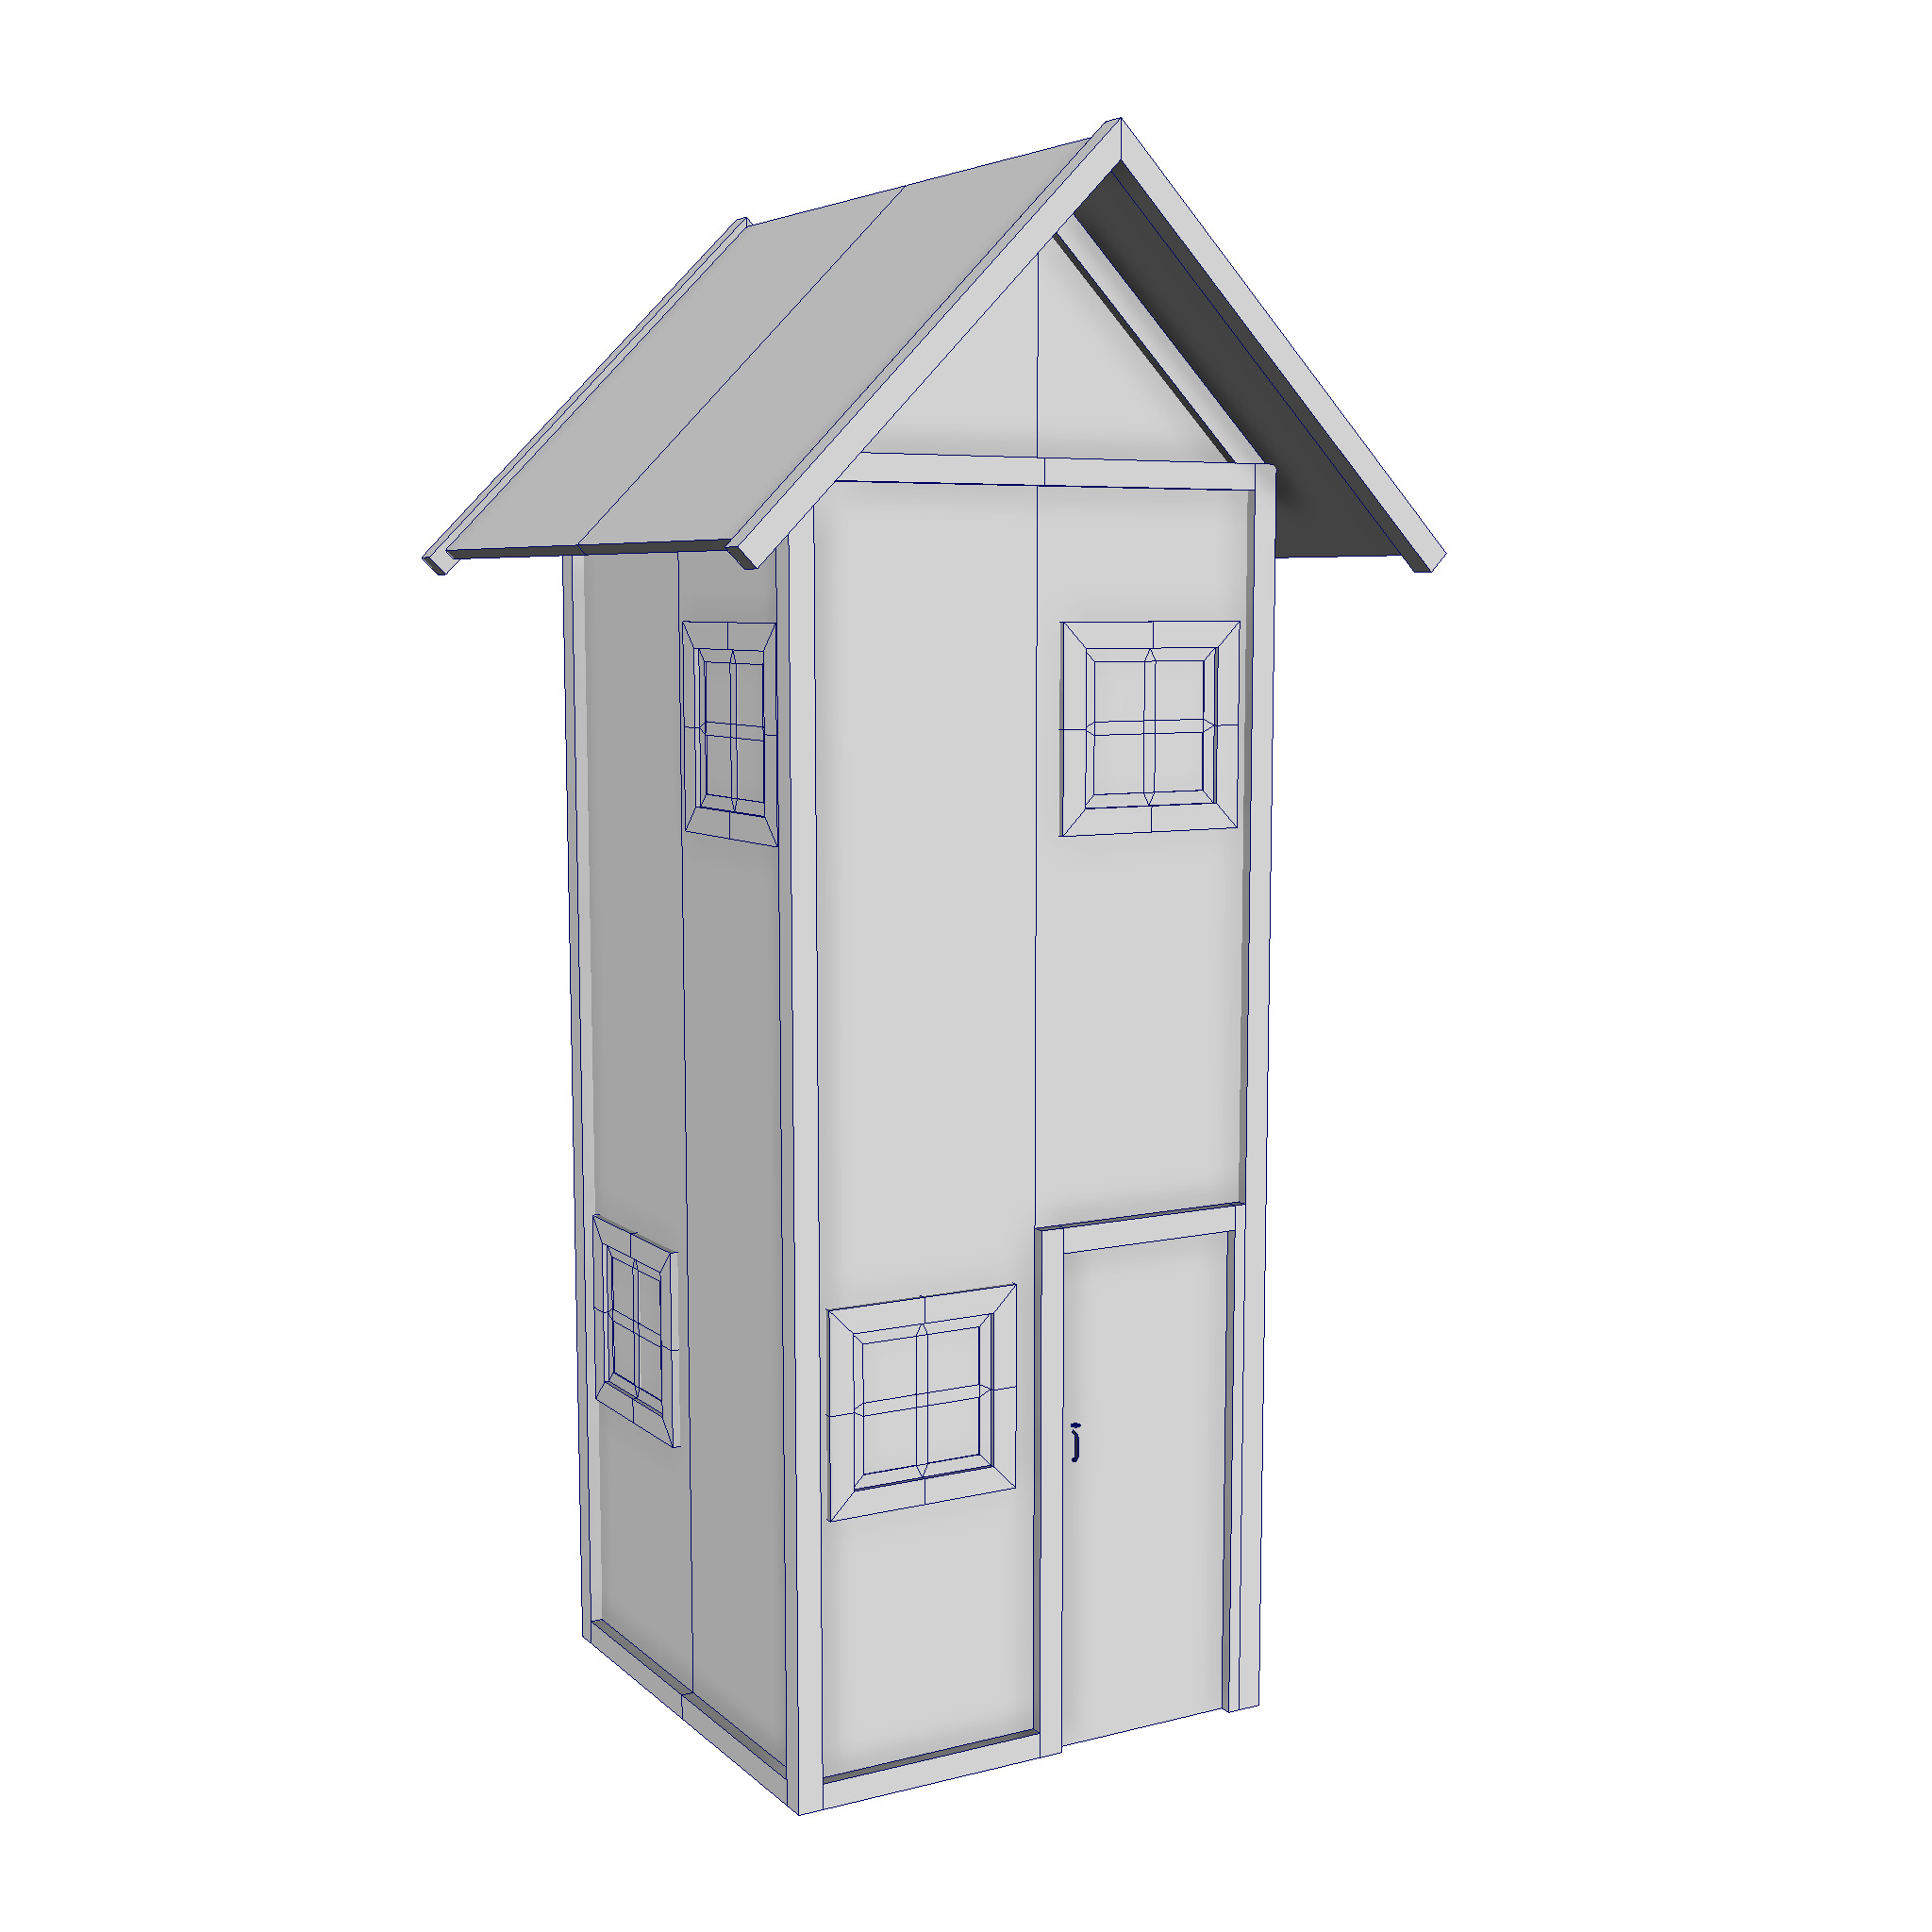 modular wood house set 3d model fbx ma mb 271436